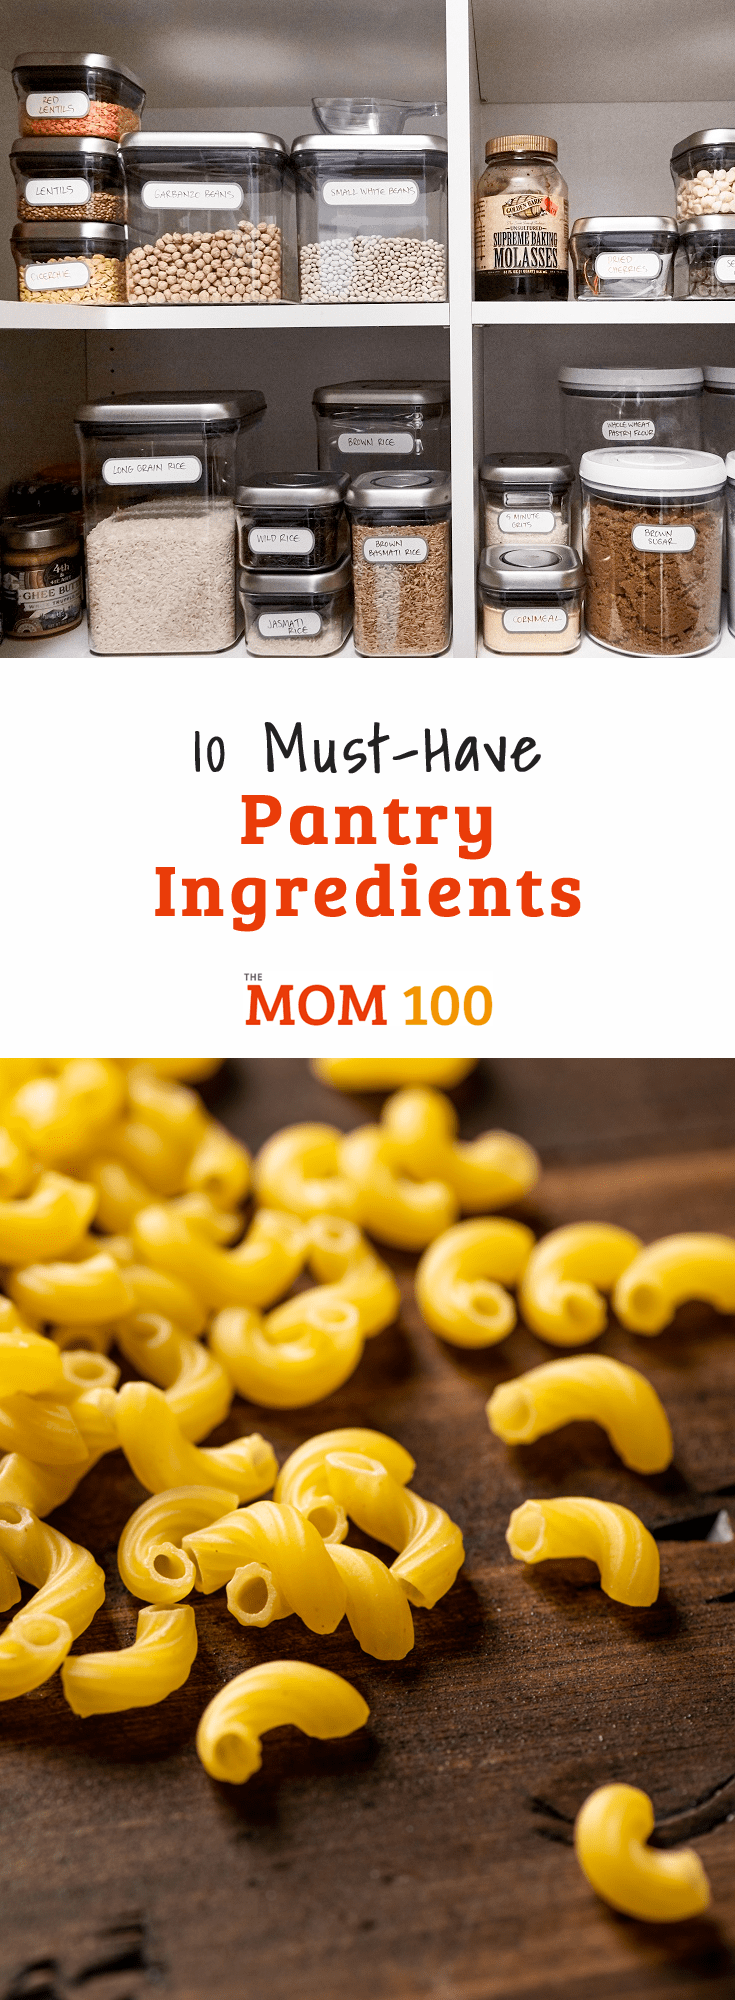 10 Must-Have Pantry Ingredients: Here are some of the everyday pantry staples that make weeknight meals easy.